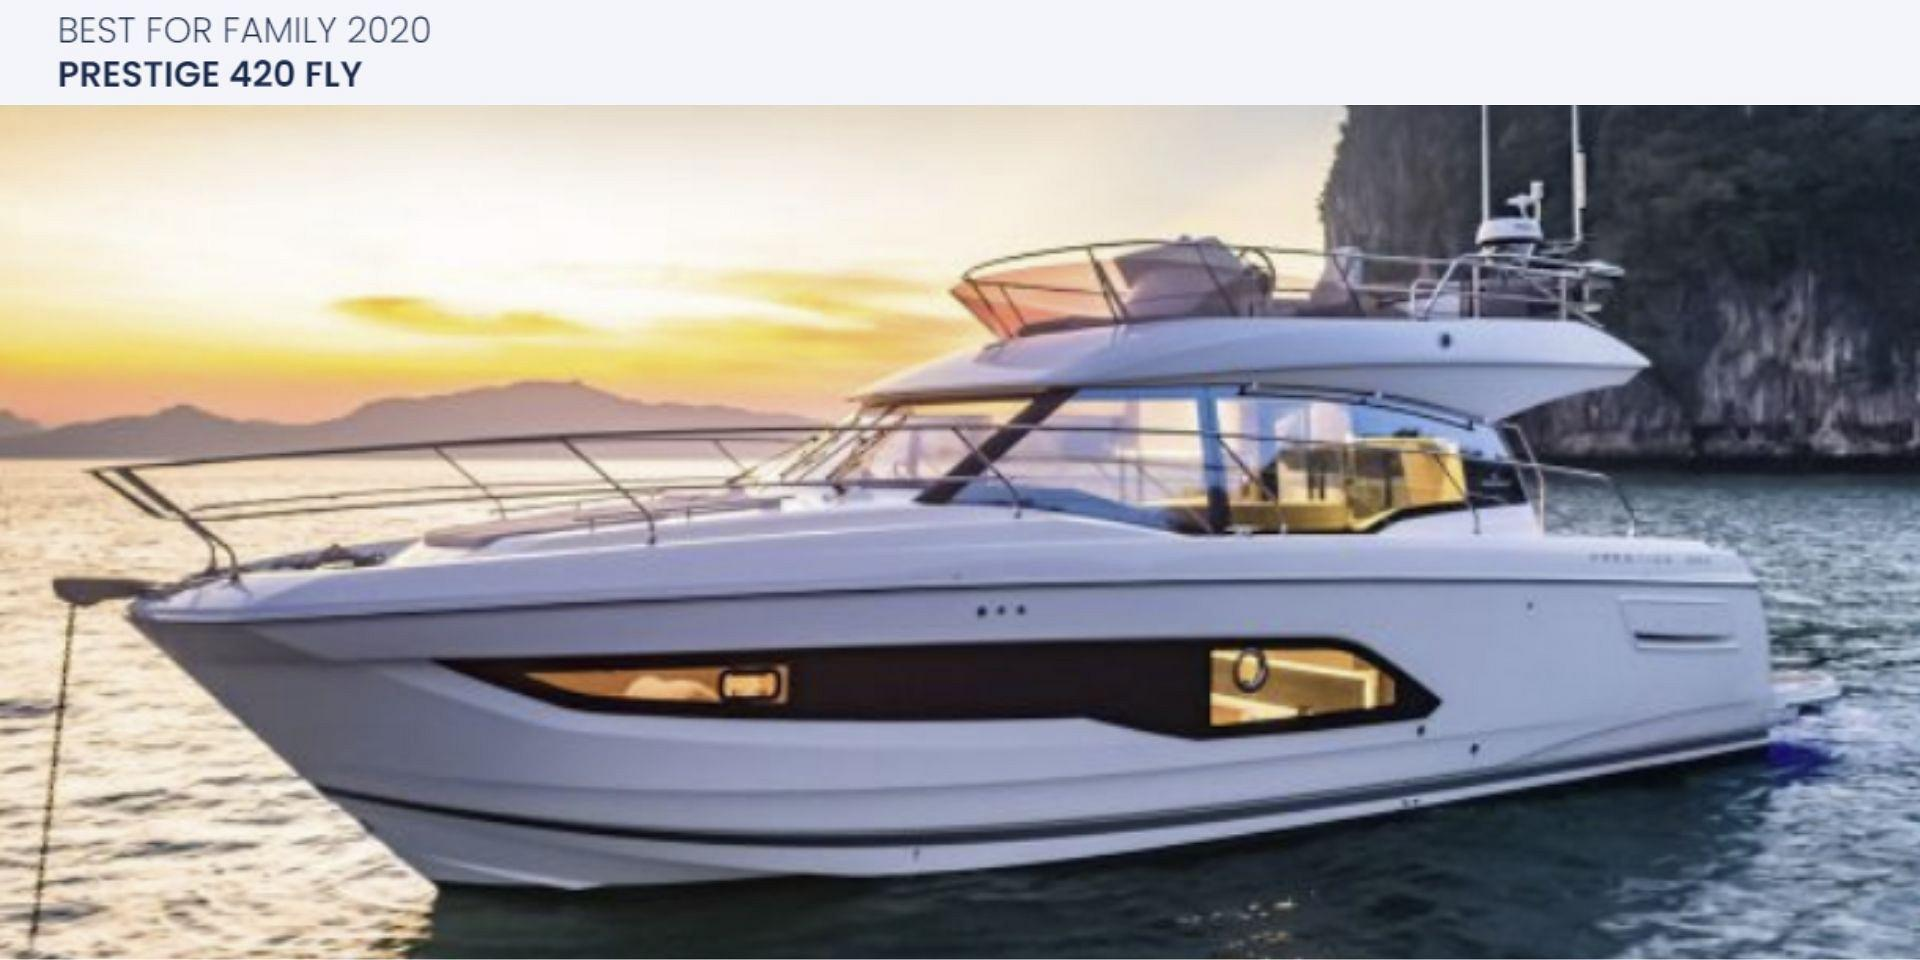 The Prestige 420 Shines in Best Of Boats Awards